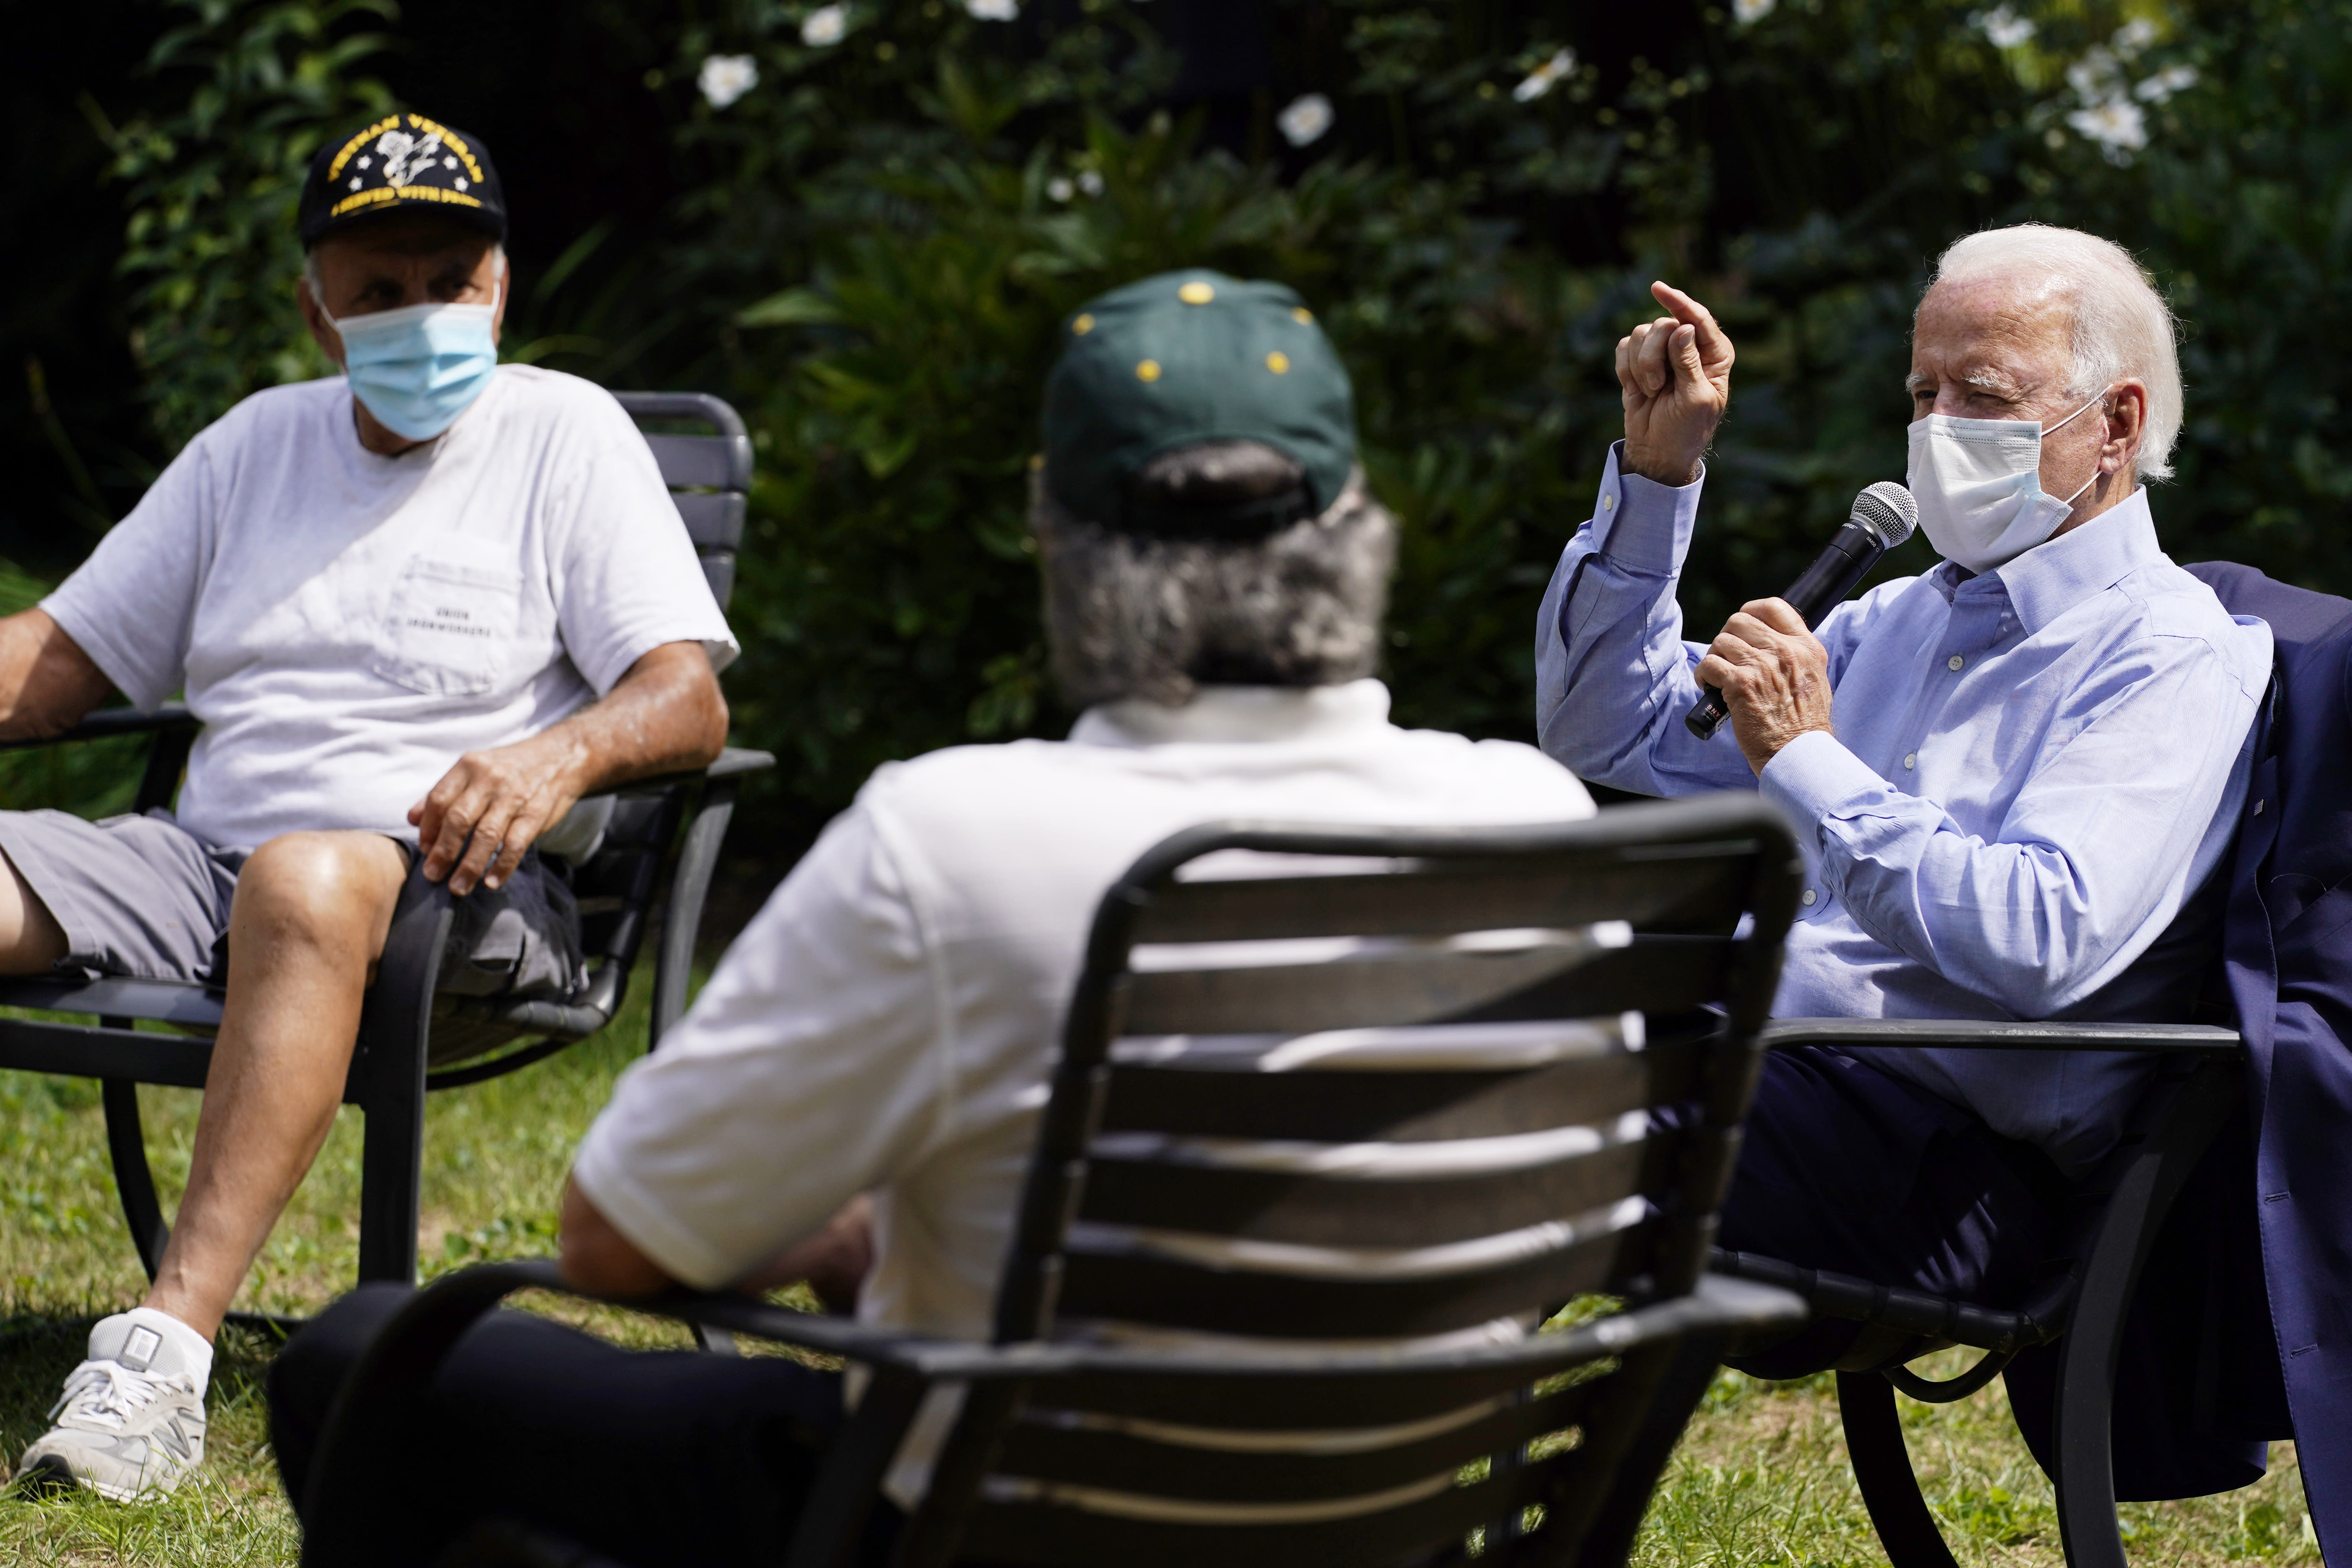 FILE - In this Sept. 7, 2020, file photo Democratic presidential candidate former Vice President Joe Biden speaks during an event with local union members in the backyard of a home in Lancaster, Pa. Campaigns are using different tactics in a pandemic election year unlike any other as candidates try to win over voters in down-ballot races that will determine control of Congress. Democrats, led by Biden, are keeping events small and mostly online. (AP Photo/Carolyn Kaster, File)